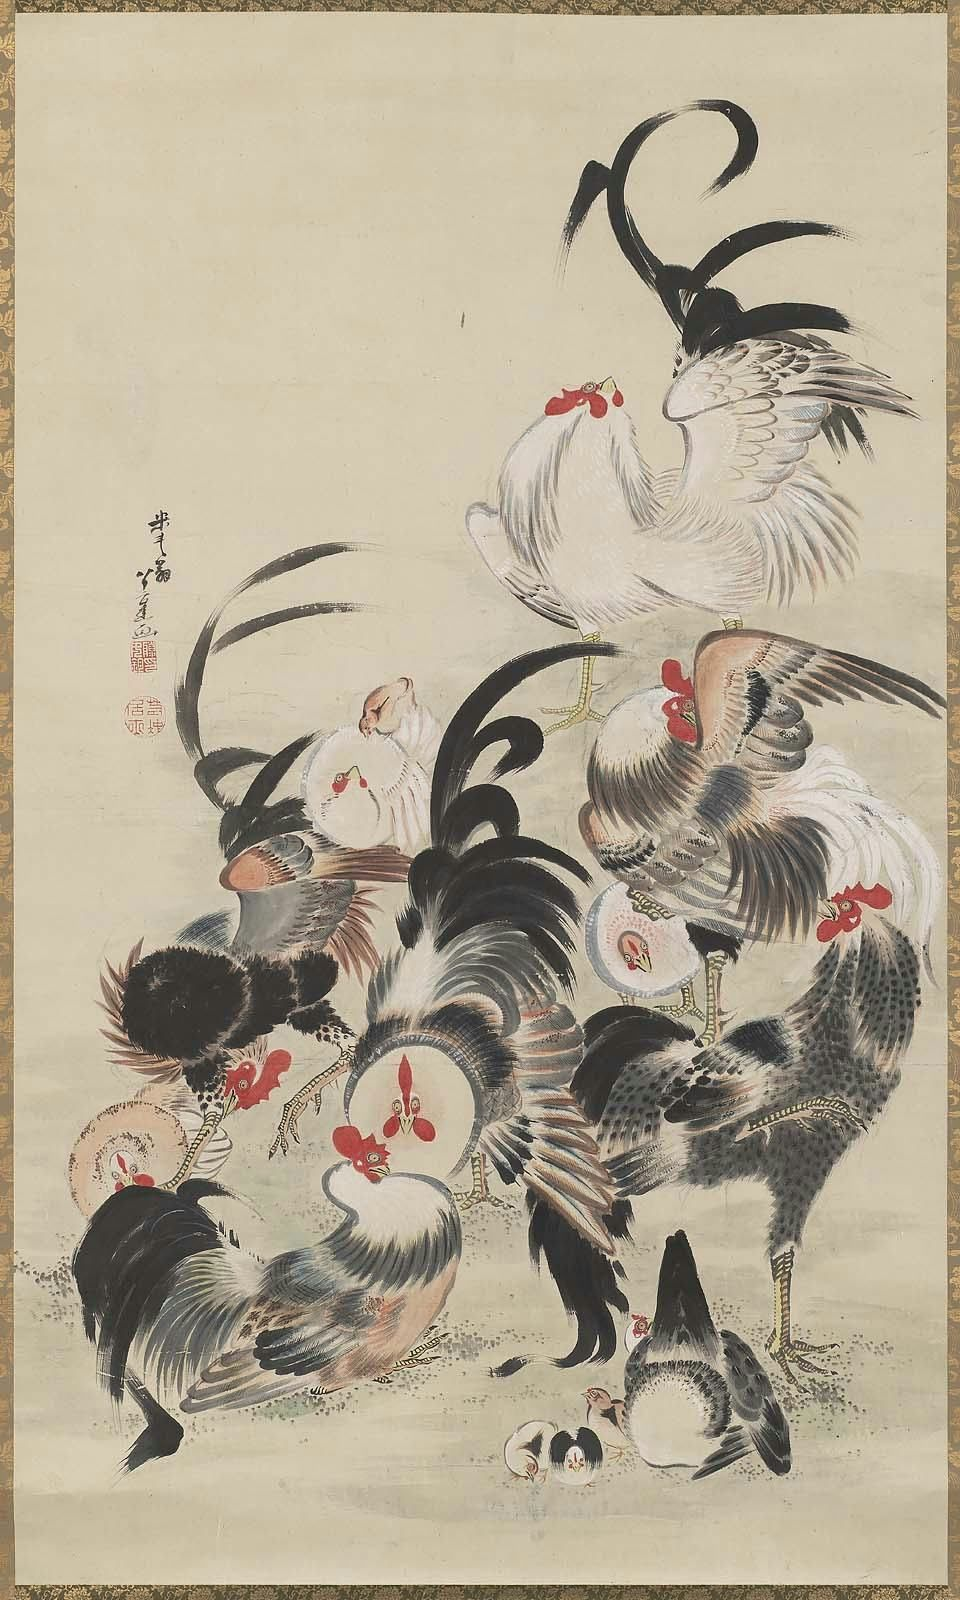 Fowl 群鶏図 Japanese, Edo period, late 18th century Formerly attributed to Itô Jakuchû, Japanese, 1716–1800